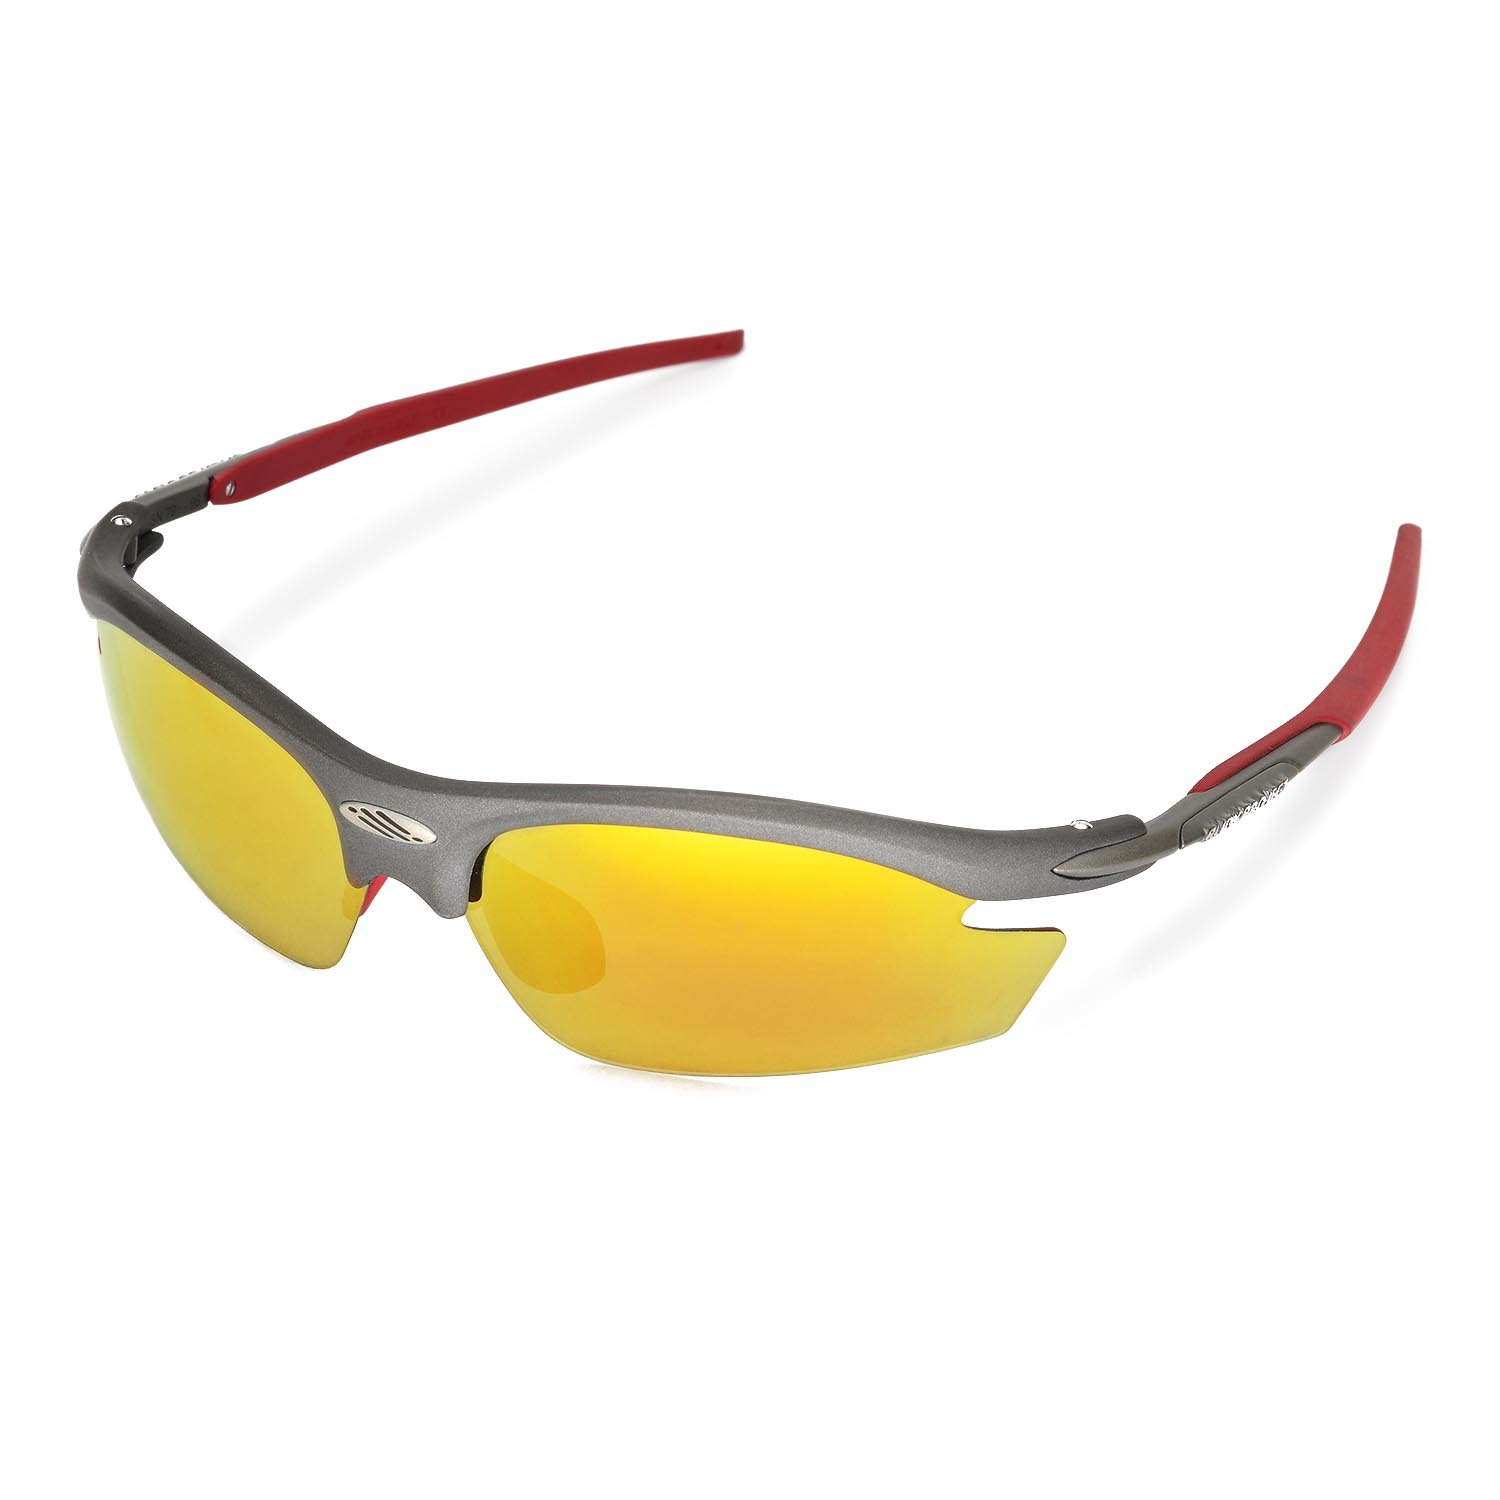 84f369aa13 Amazon.com  Walleva Replacement Lenses for Rudy Project Rydon Sunglasses -  Multiple Options (24K Gold Mirror Coated - Polarized)  Sports   Outdoors